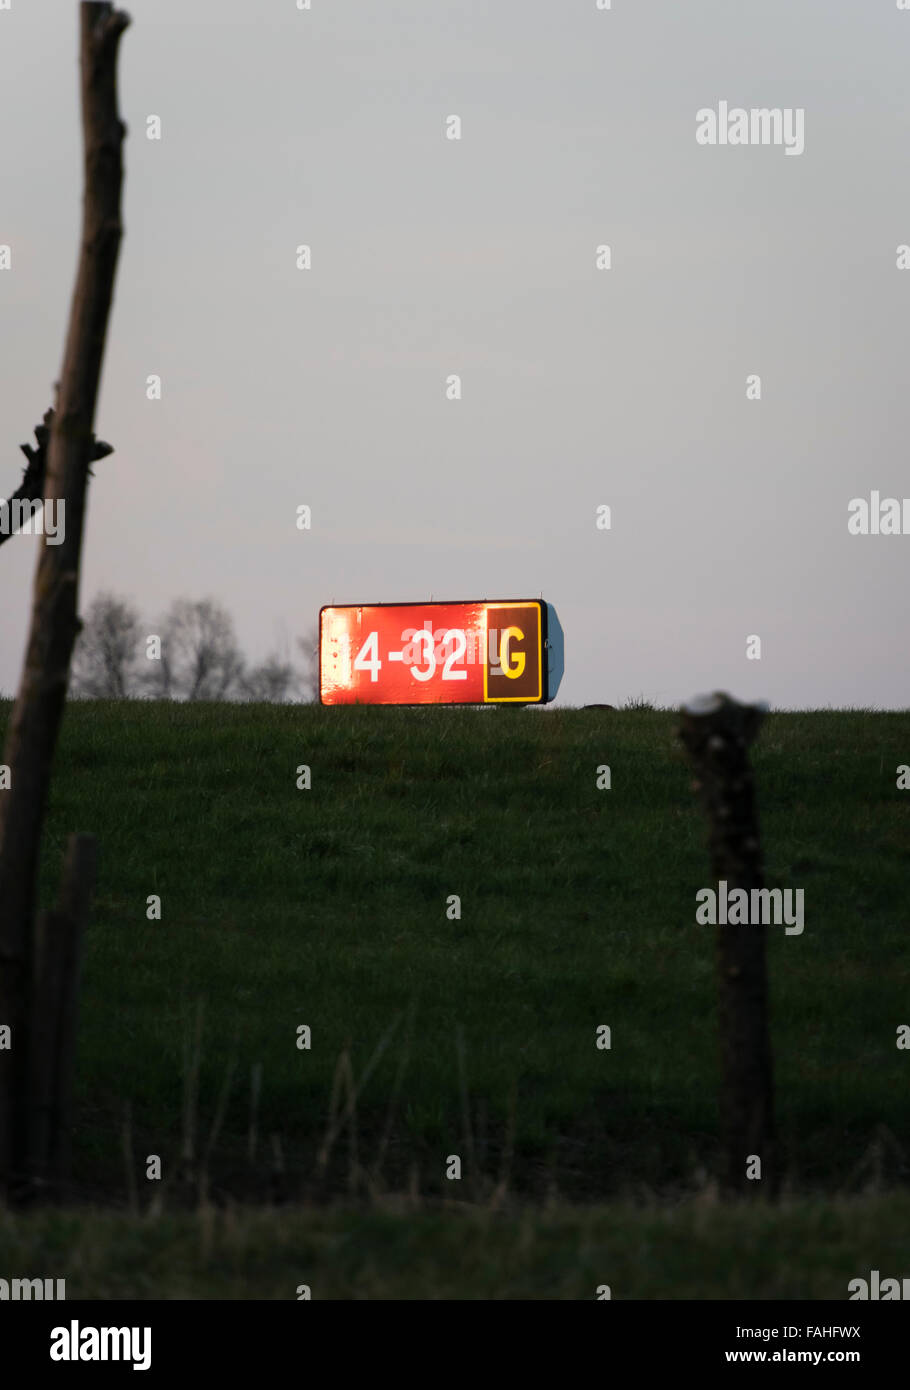 Runway signalisation in the evening twilight at Zurich international airport - Stock Image